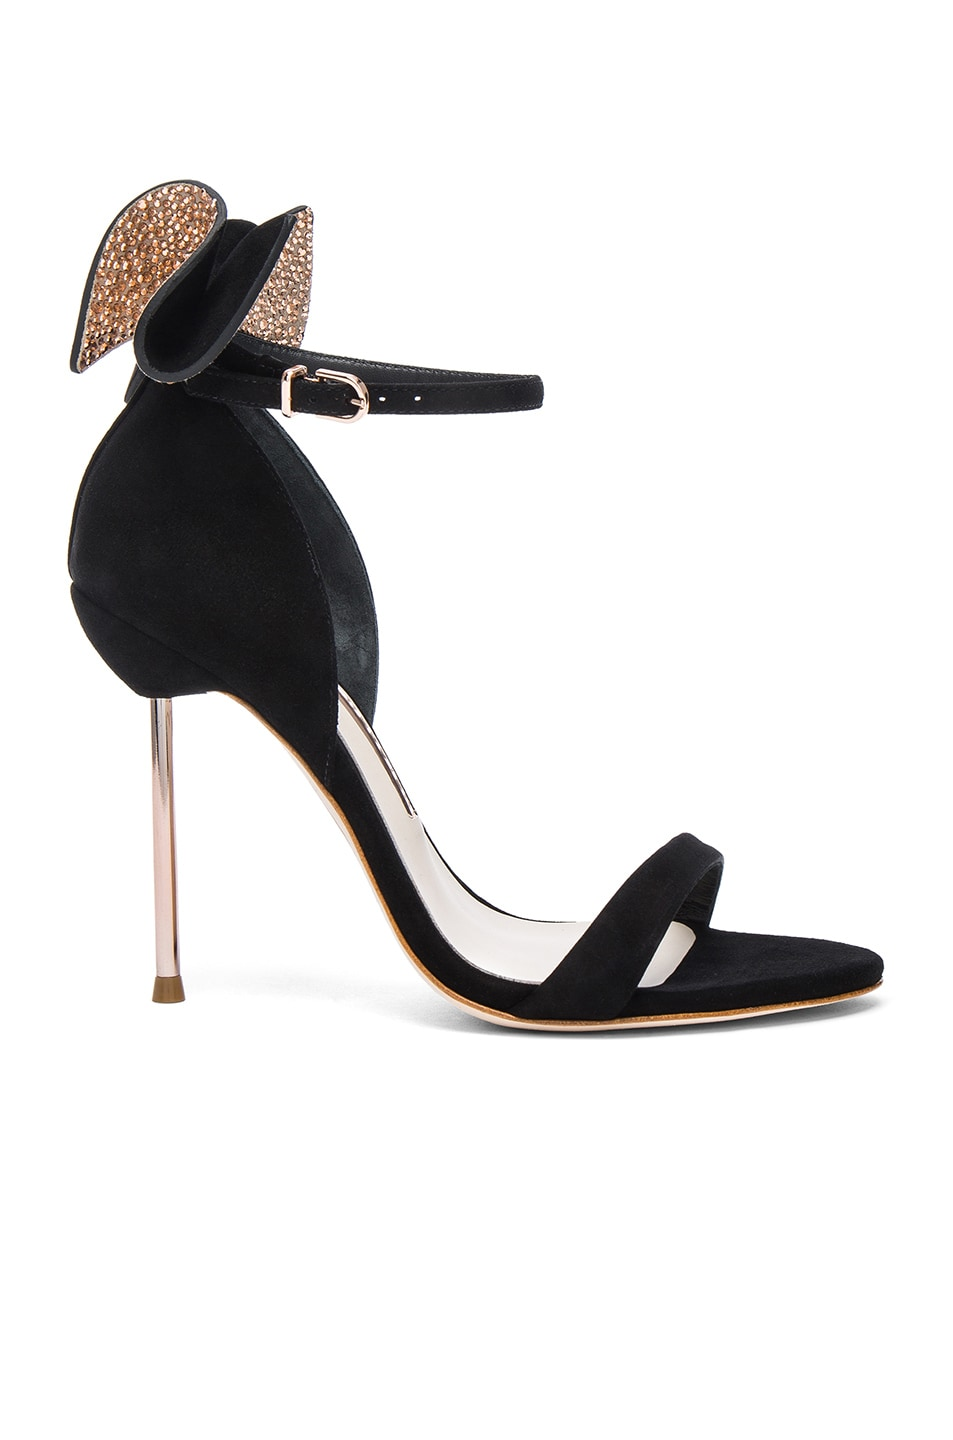 Image 1 of Sophia Webster Suede Maya Heels in Black